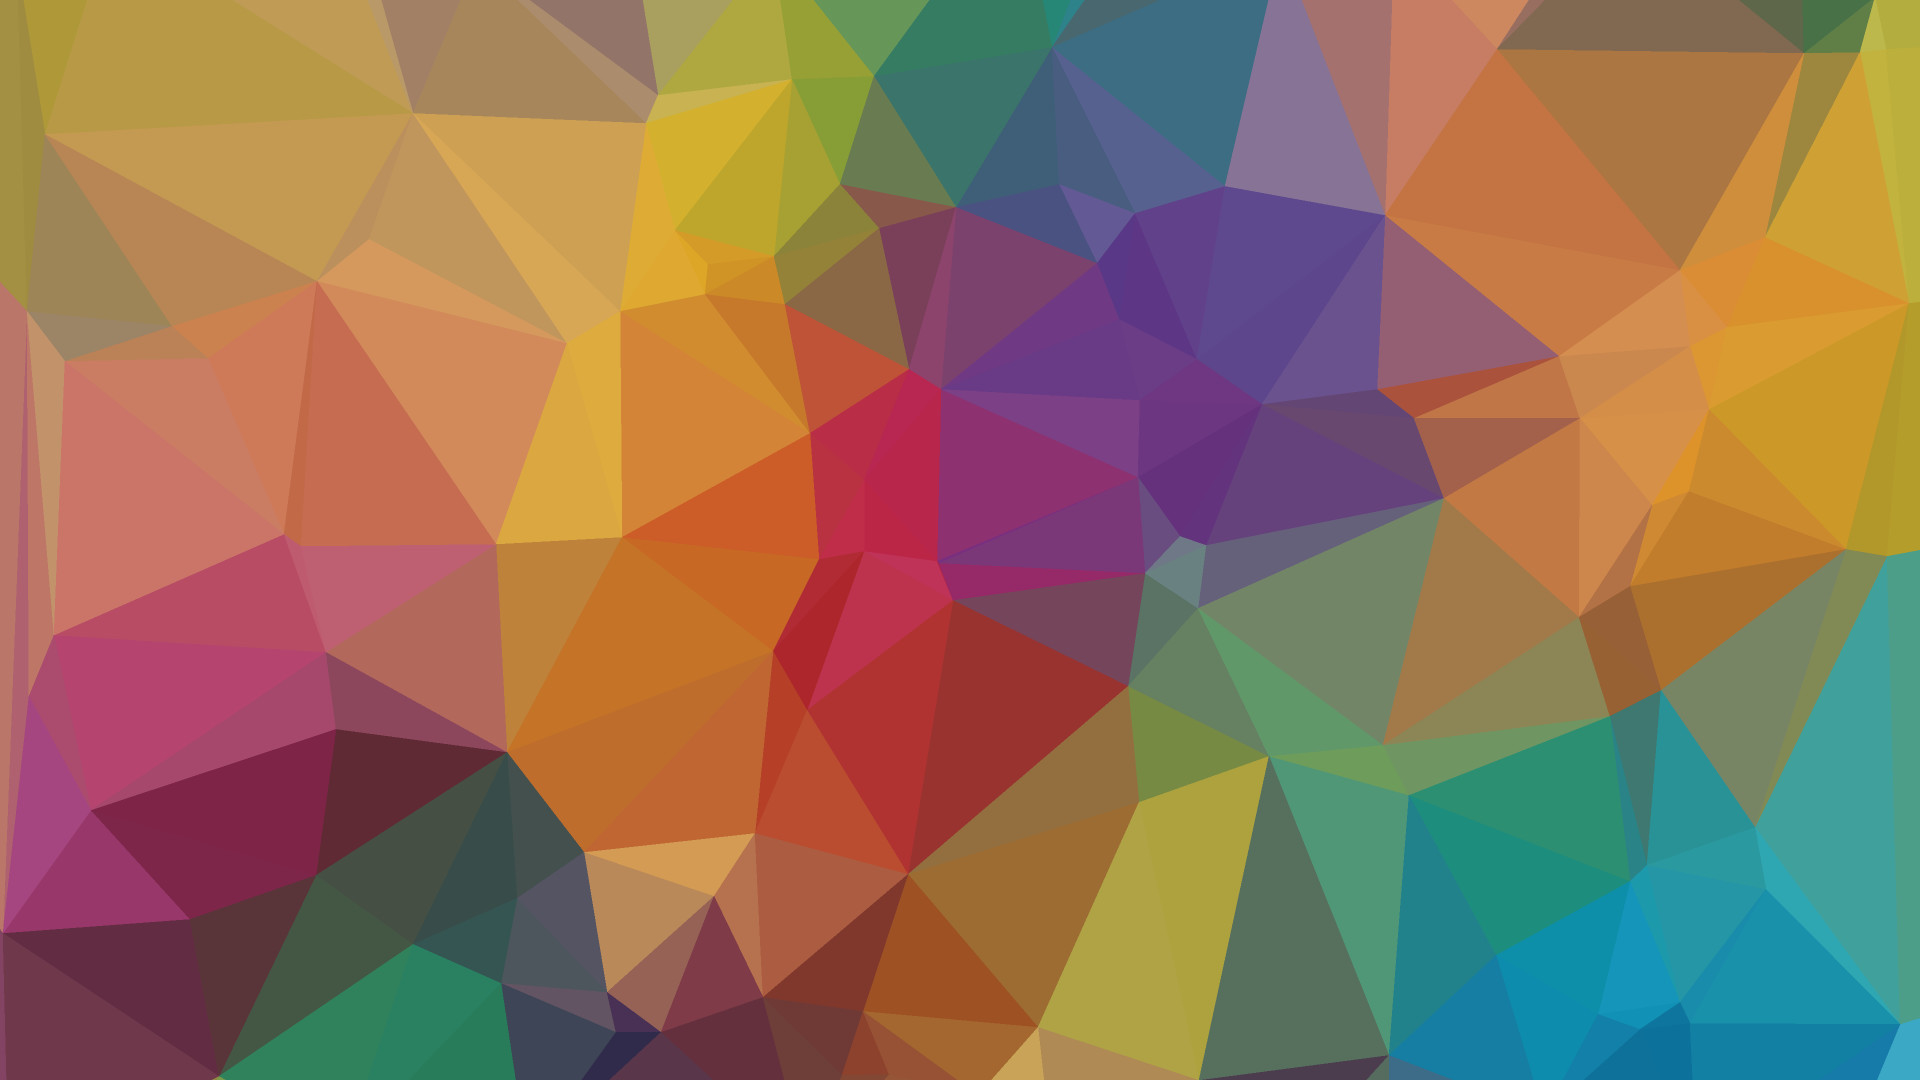 … Wallpaper Geometric Color 28 1080p HD by AIRWORLDKING